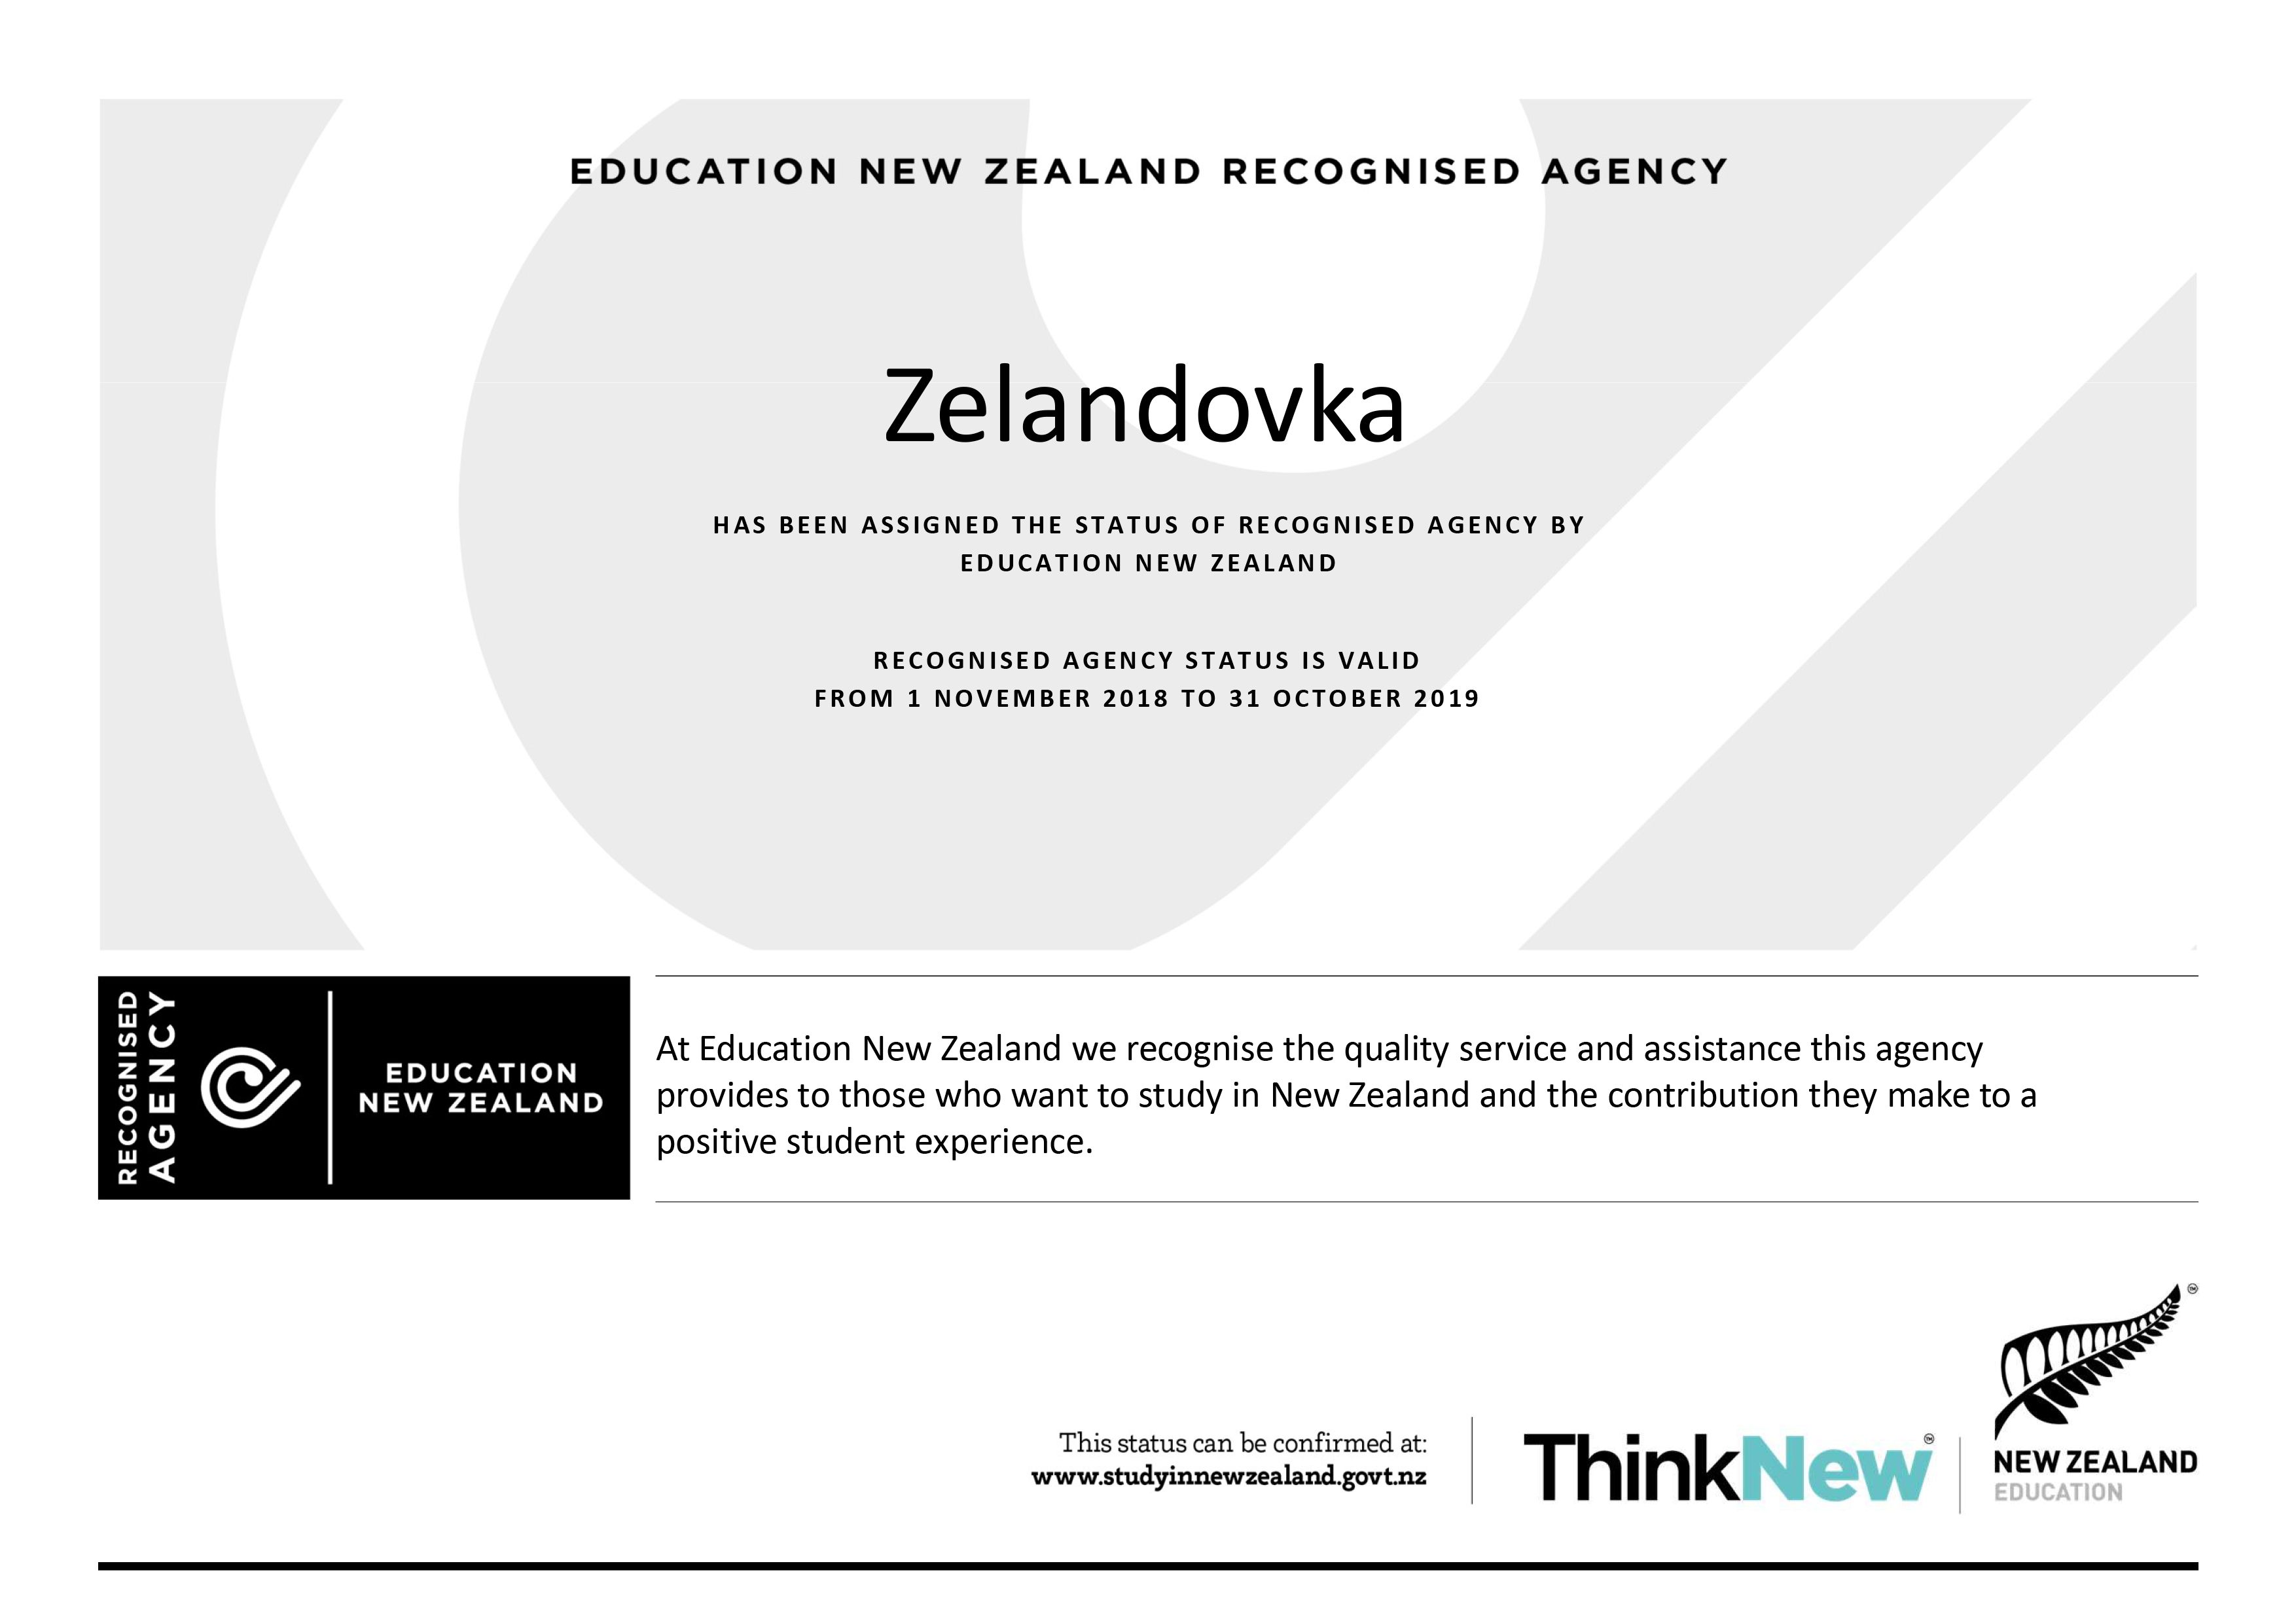 Zelandovka - ENZ Recognised Agency